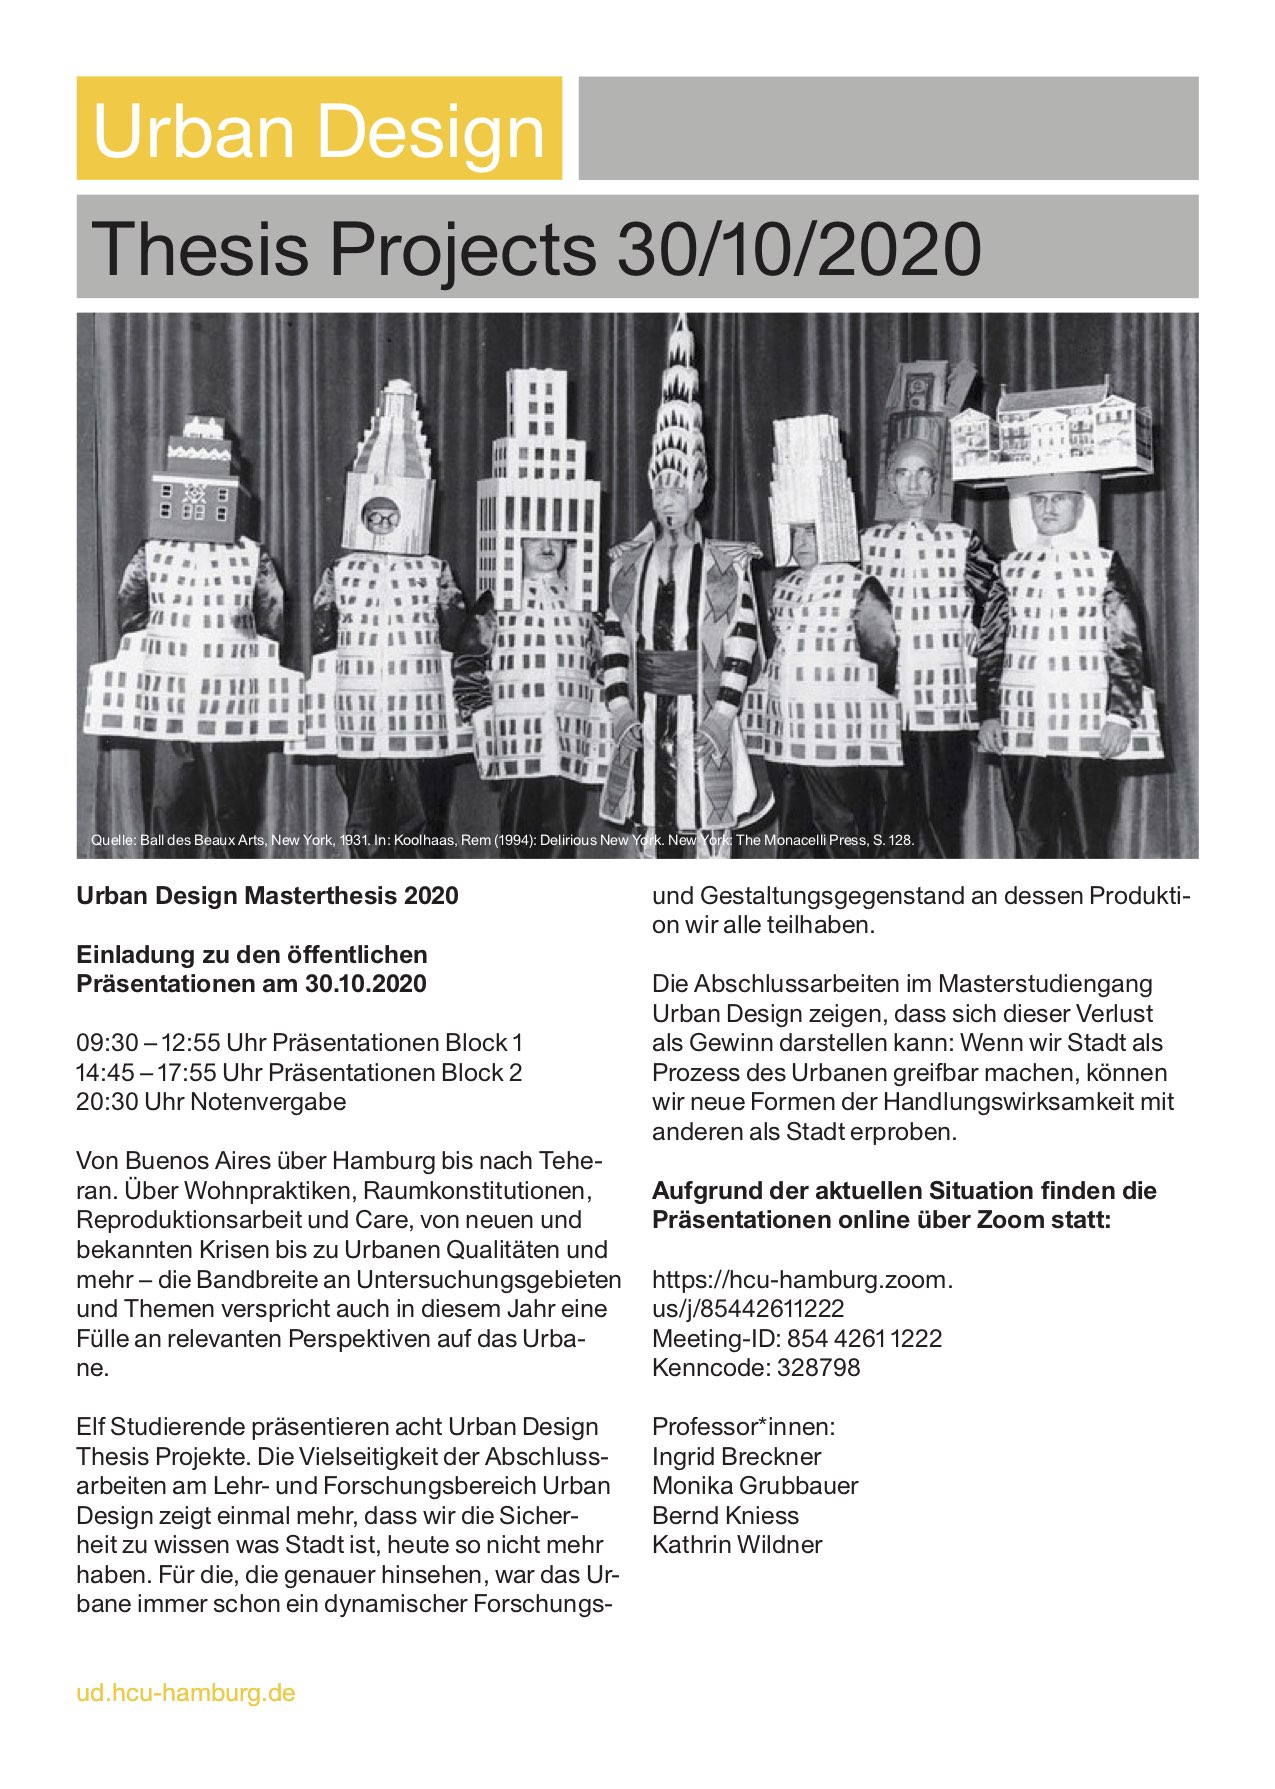 http://ud.hcu-hamburg.de/projects/events/ud-thesis-praesentation-2020